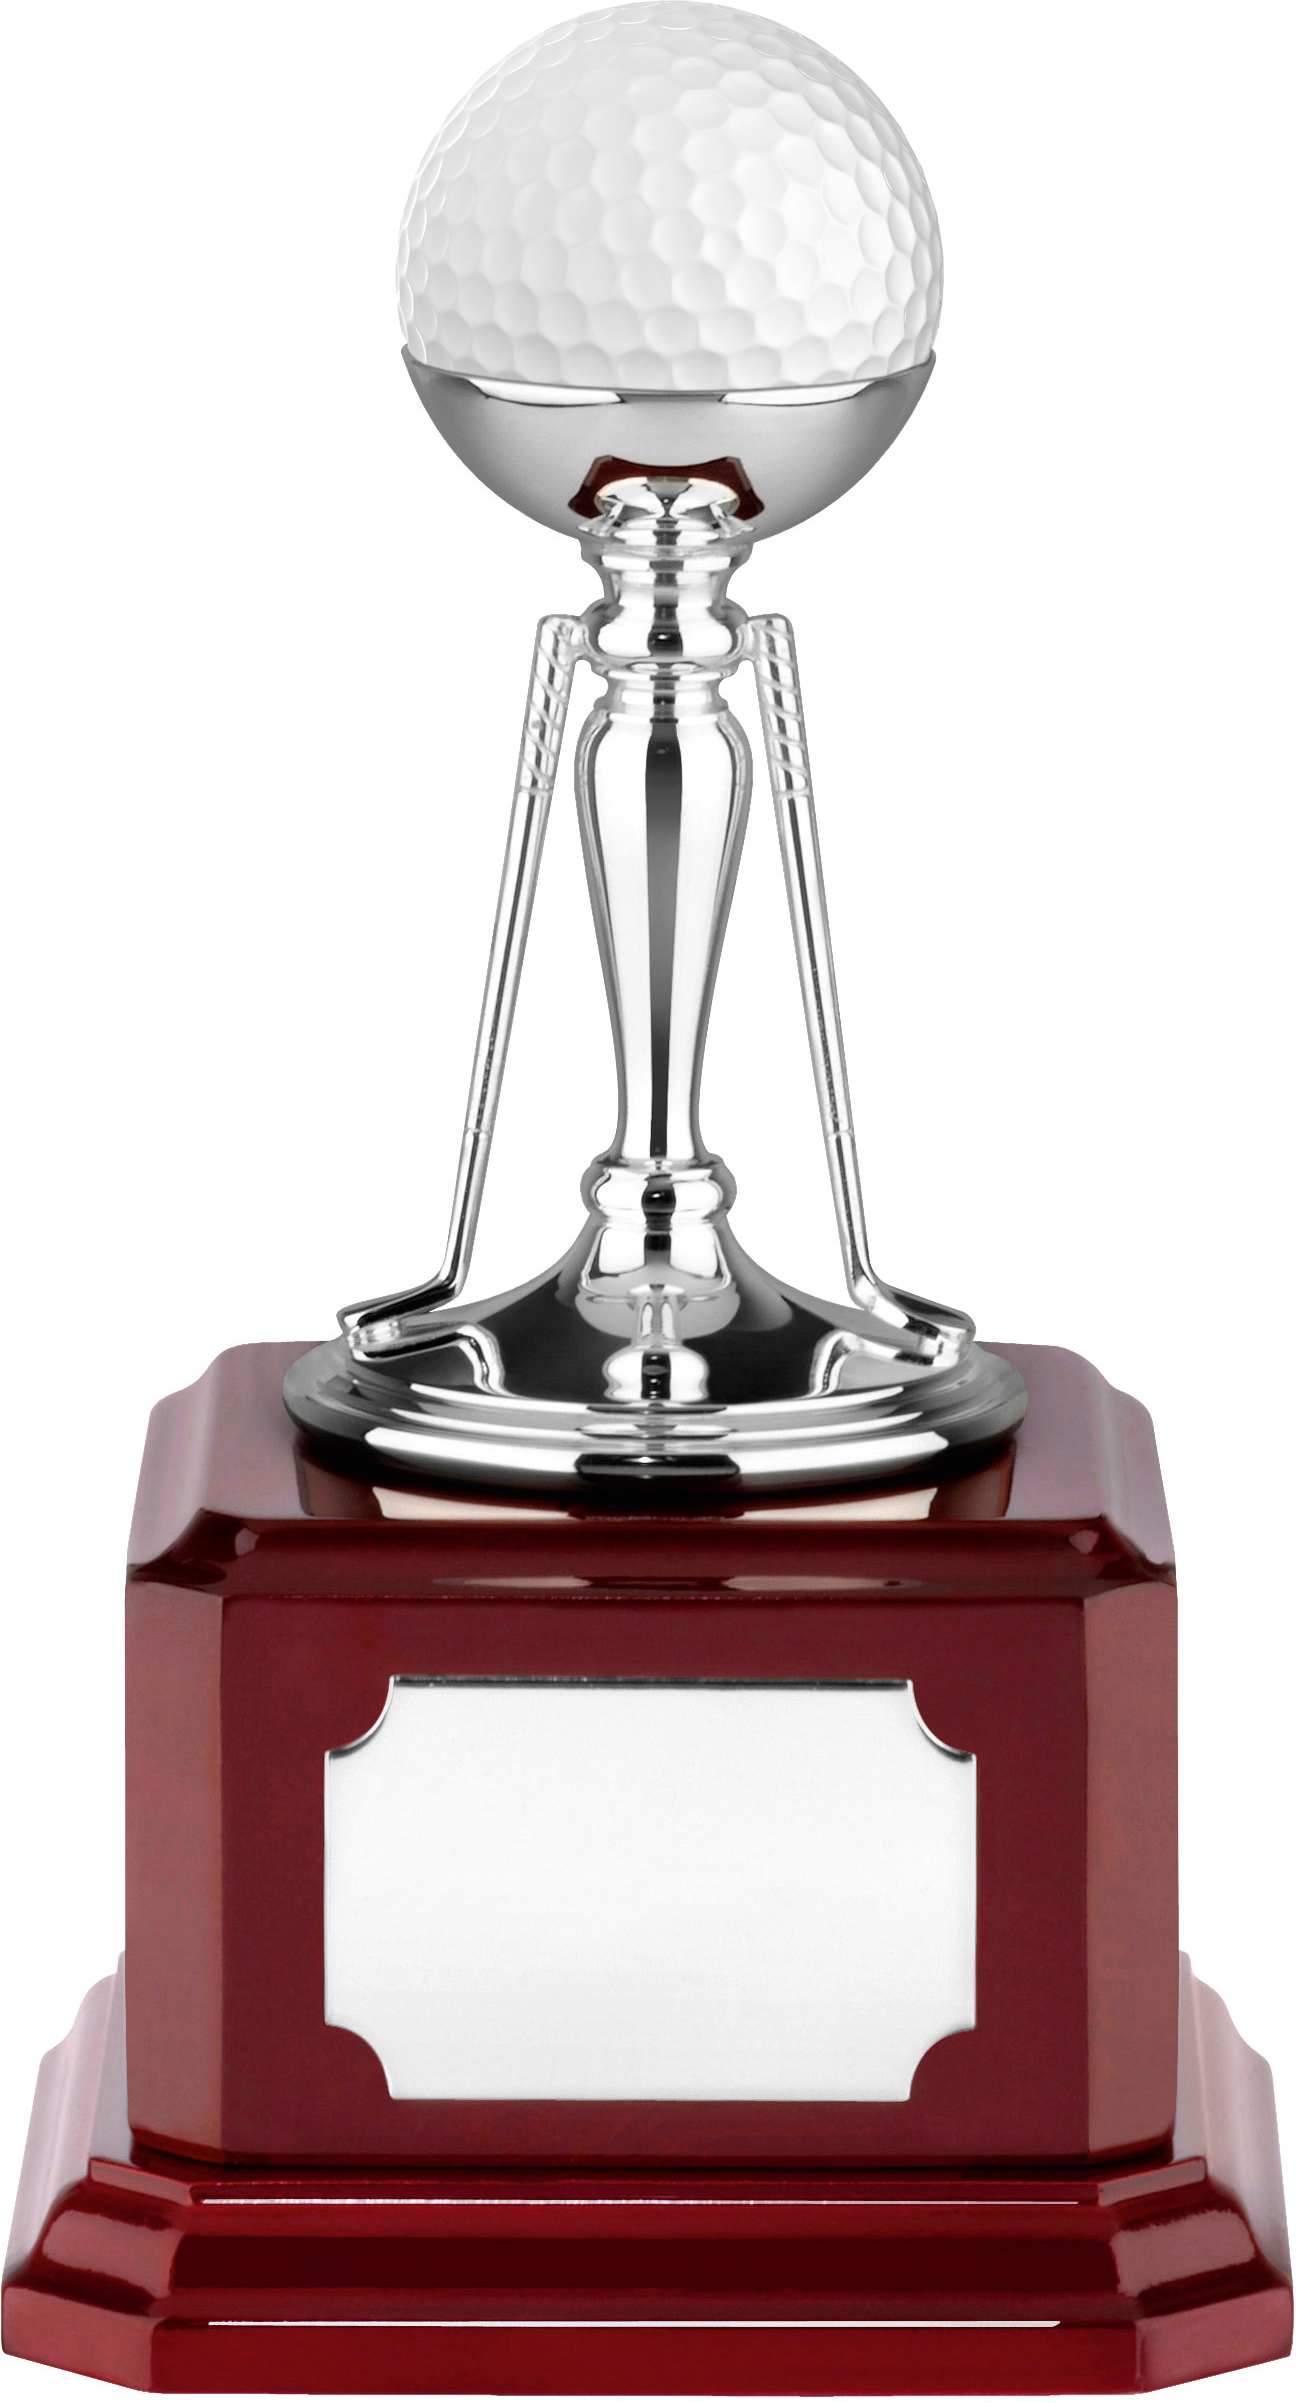 "Nickel Plated Golf Ball Holder Trophy on Piano Wood Base 15cm (6"")"